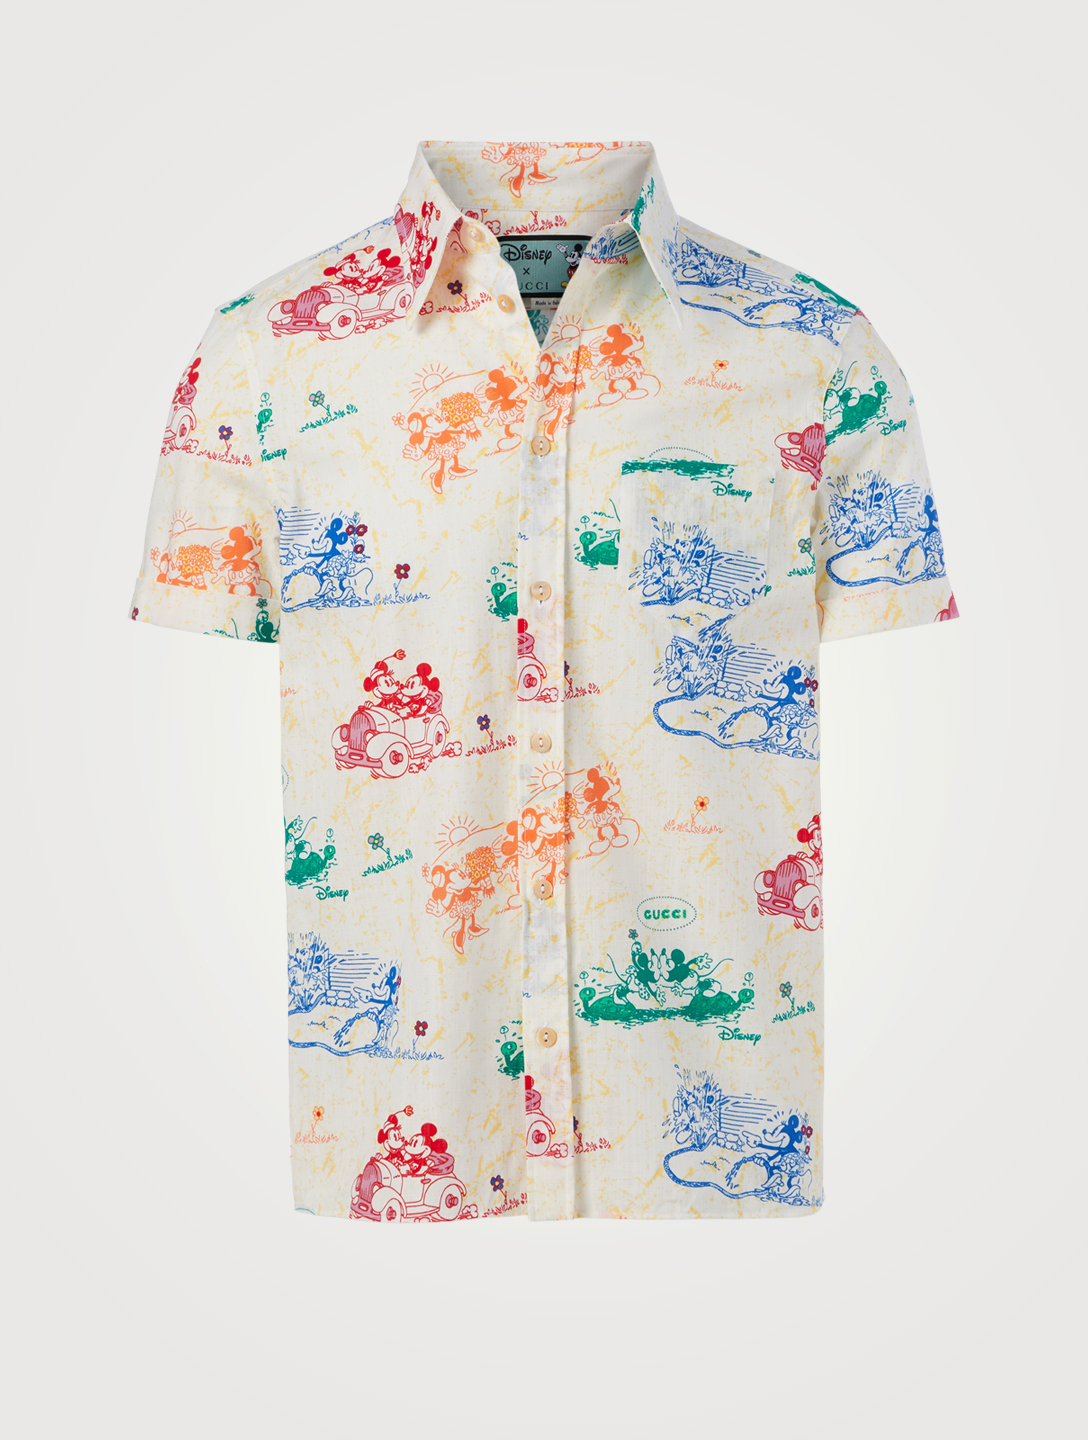 GUCCI DISNEY Cotton Short-Sleeve Shirt Men's White